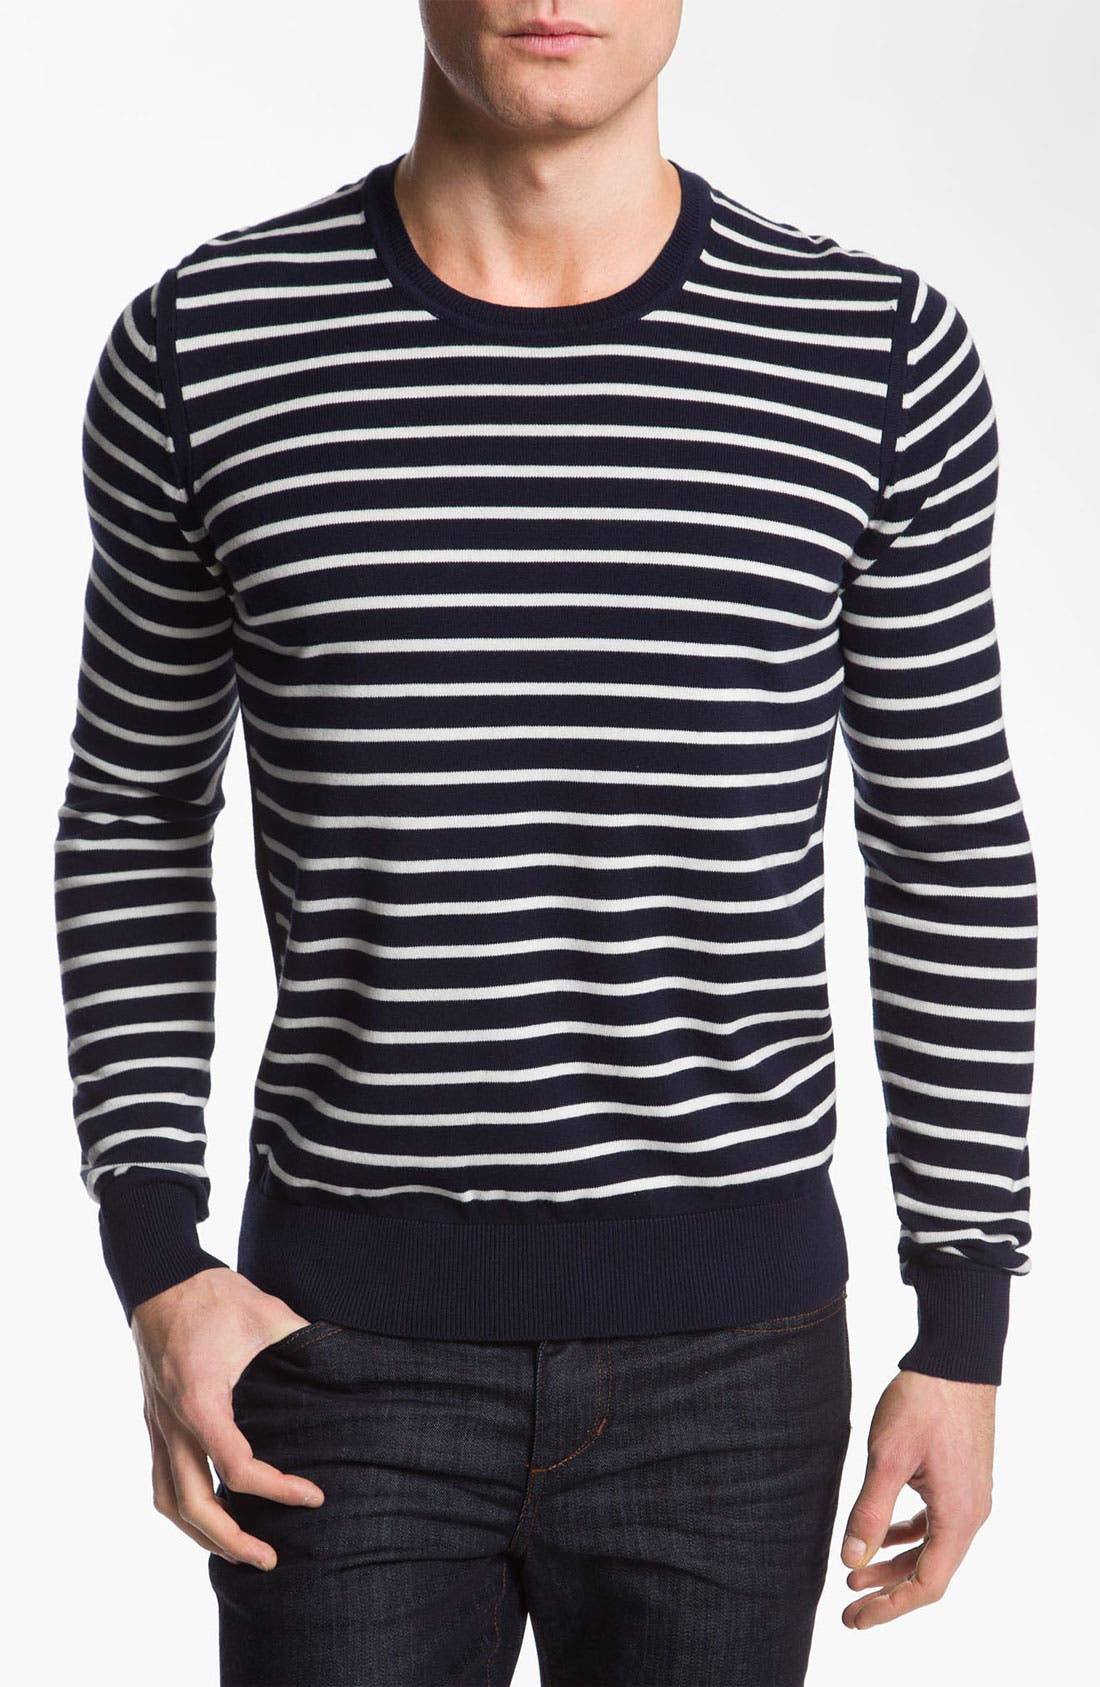 Main Image - Ben Sherman Crewneck Sweater